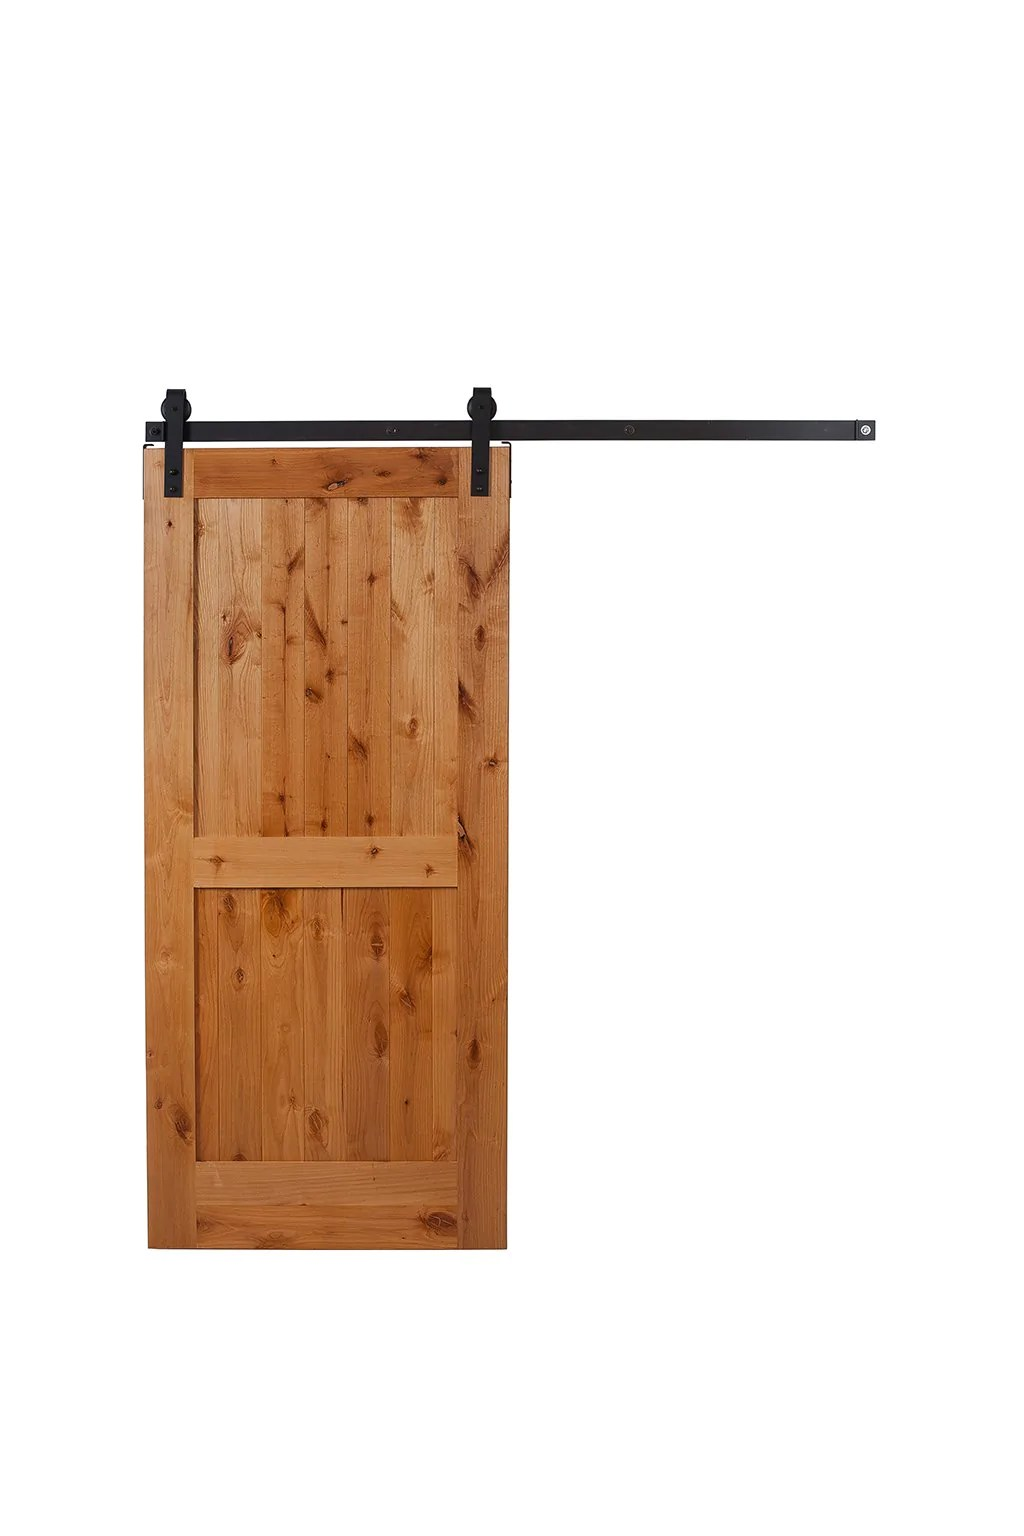 Le Meilleur Rustic Hardware Sliding 2 Panel Barn Door Clear Coat Ce Mois Ci